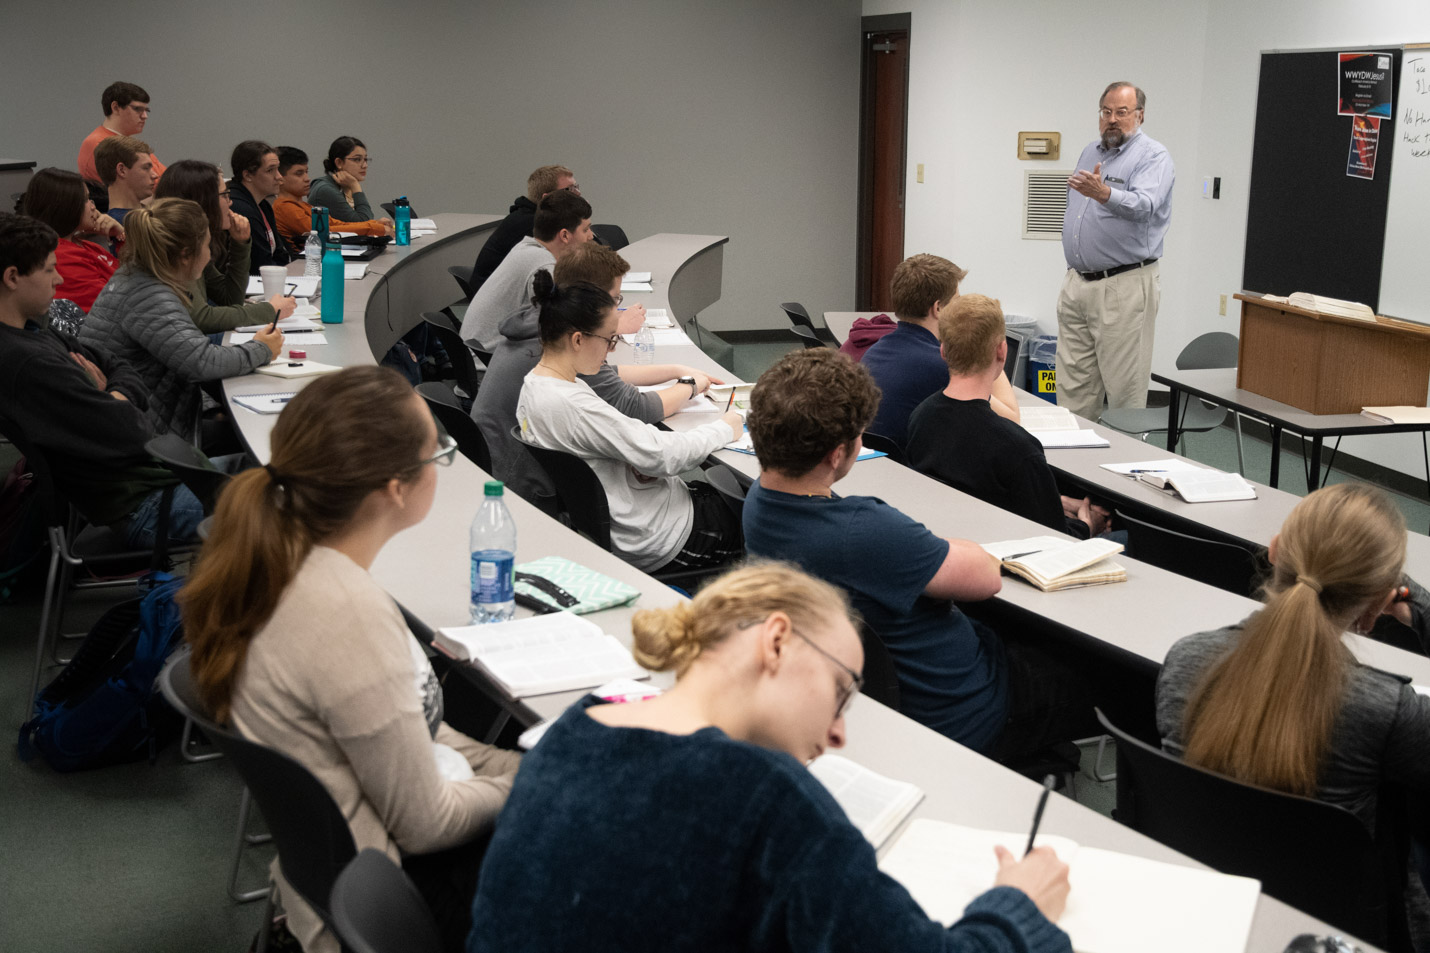 This is a photo of a Bible class at Harding.